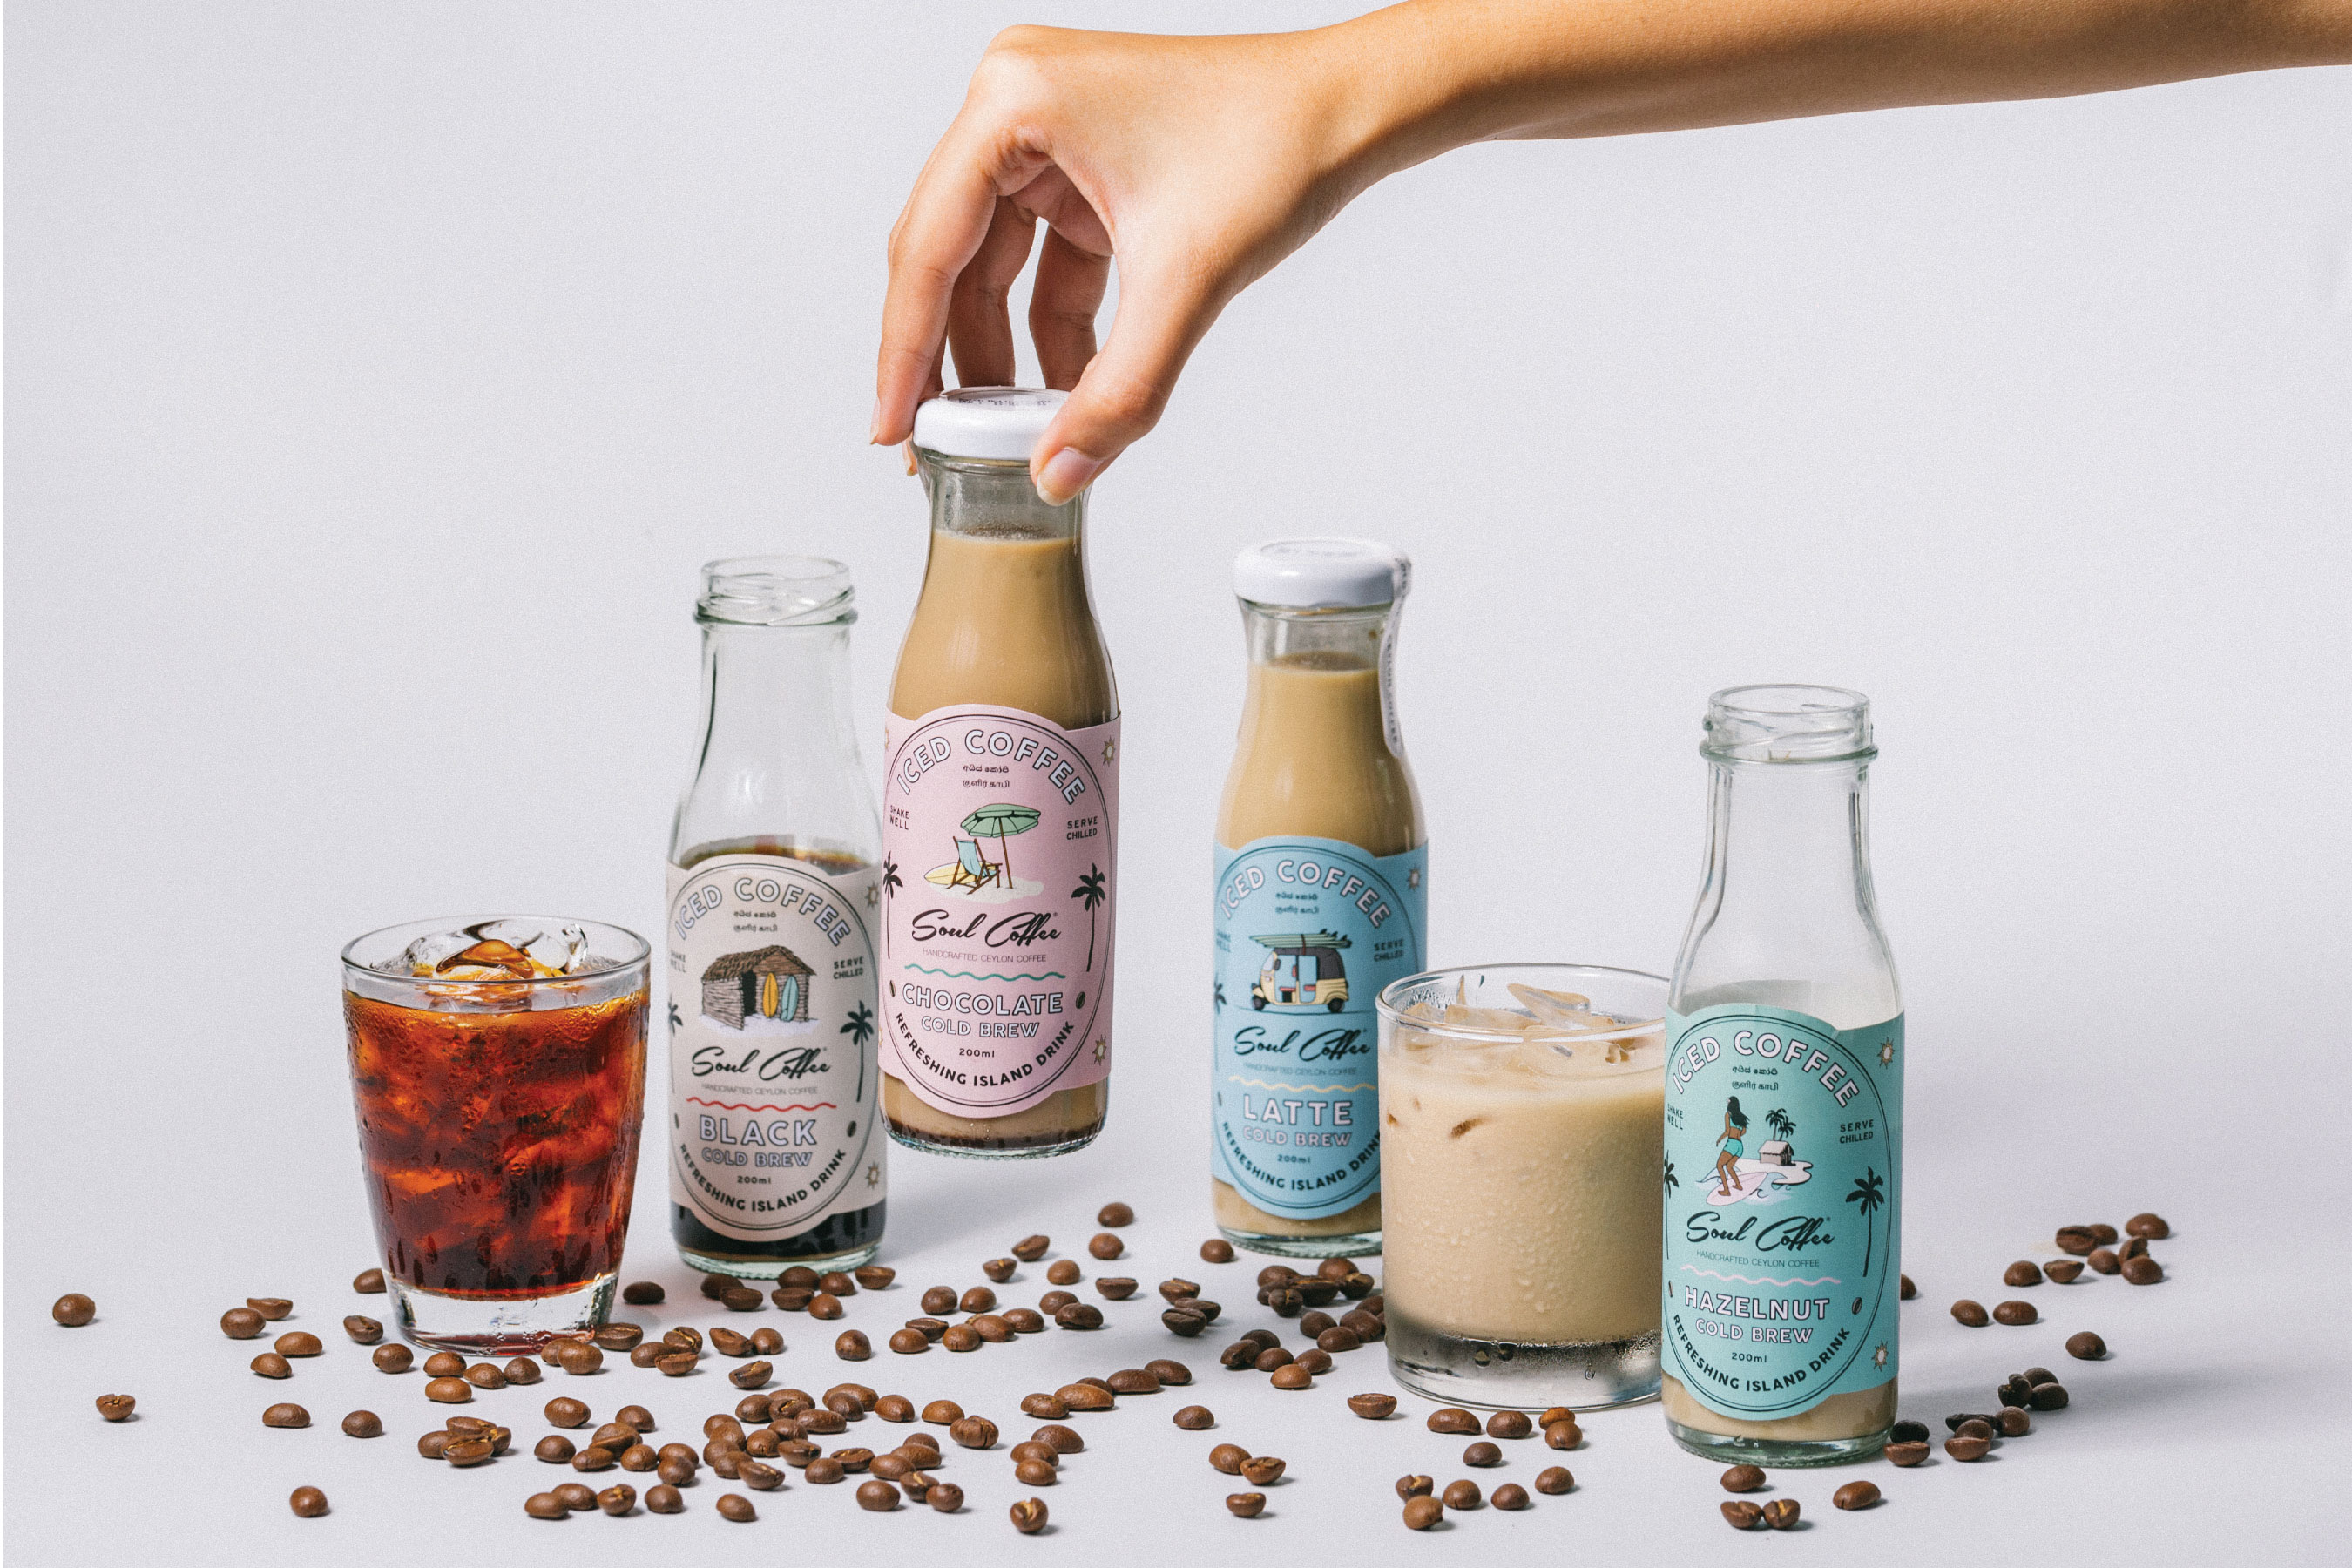 Iced Coffee Label Design for Soul Coffee Designed by Studio Nice One